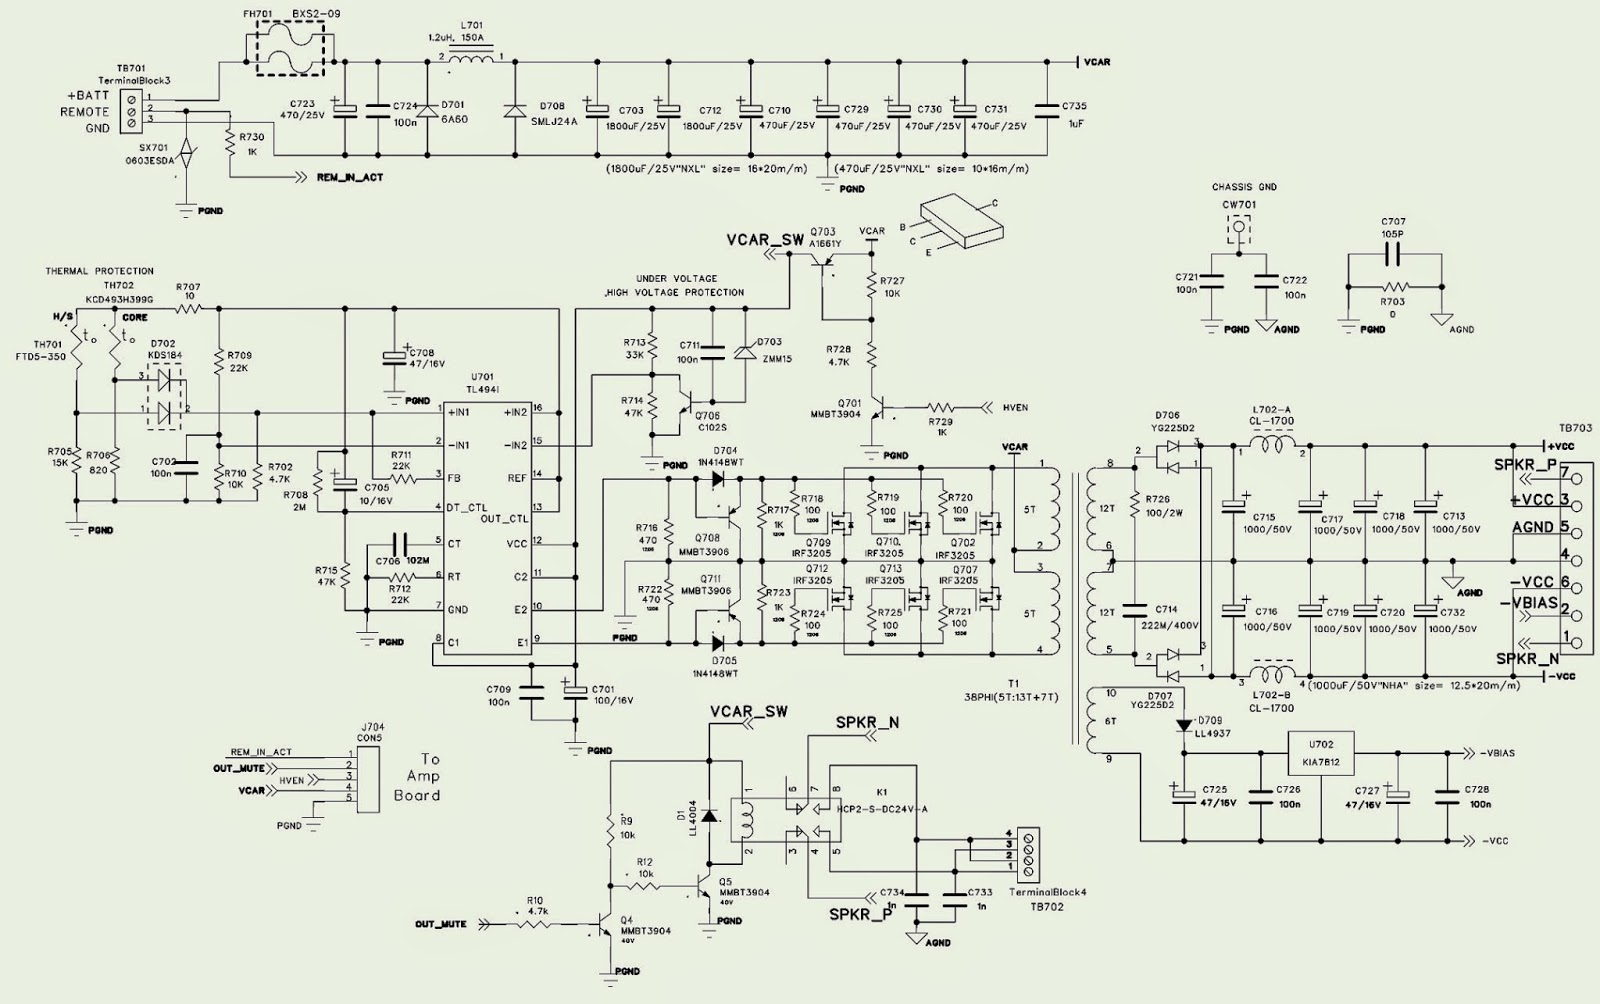 various diagram jbl ms a5001 schematic power amplifier variable dc power supply schematic diagram variable dc power supply circuit diagram